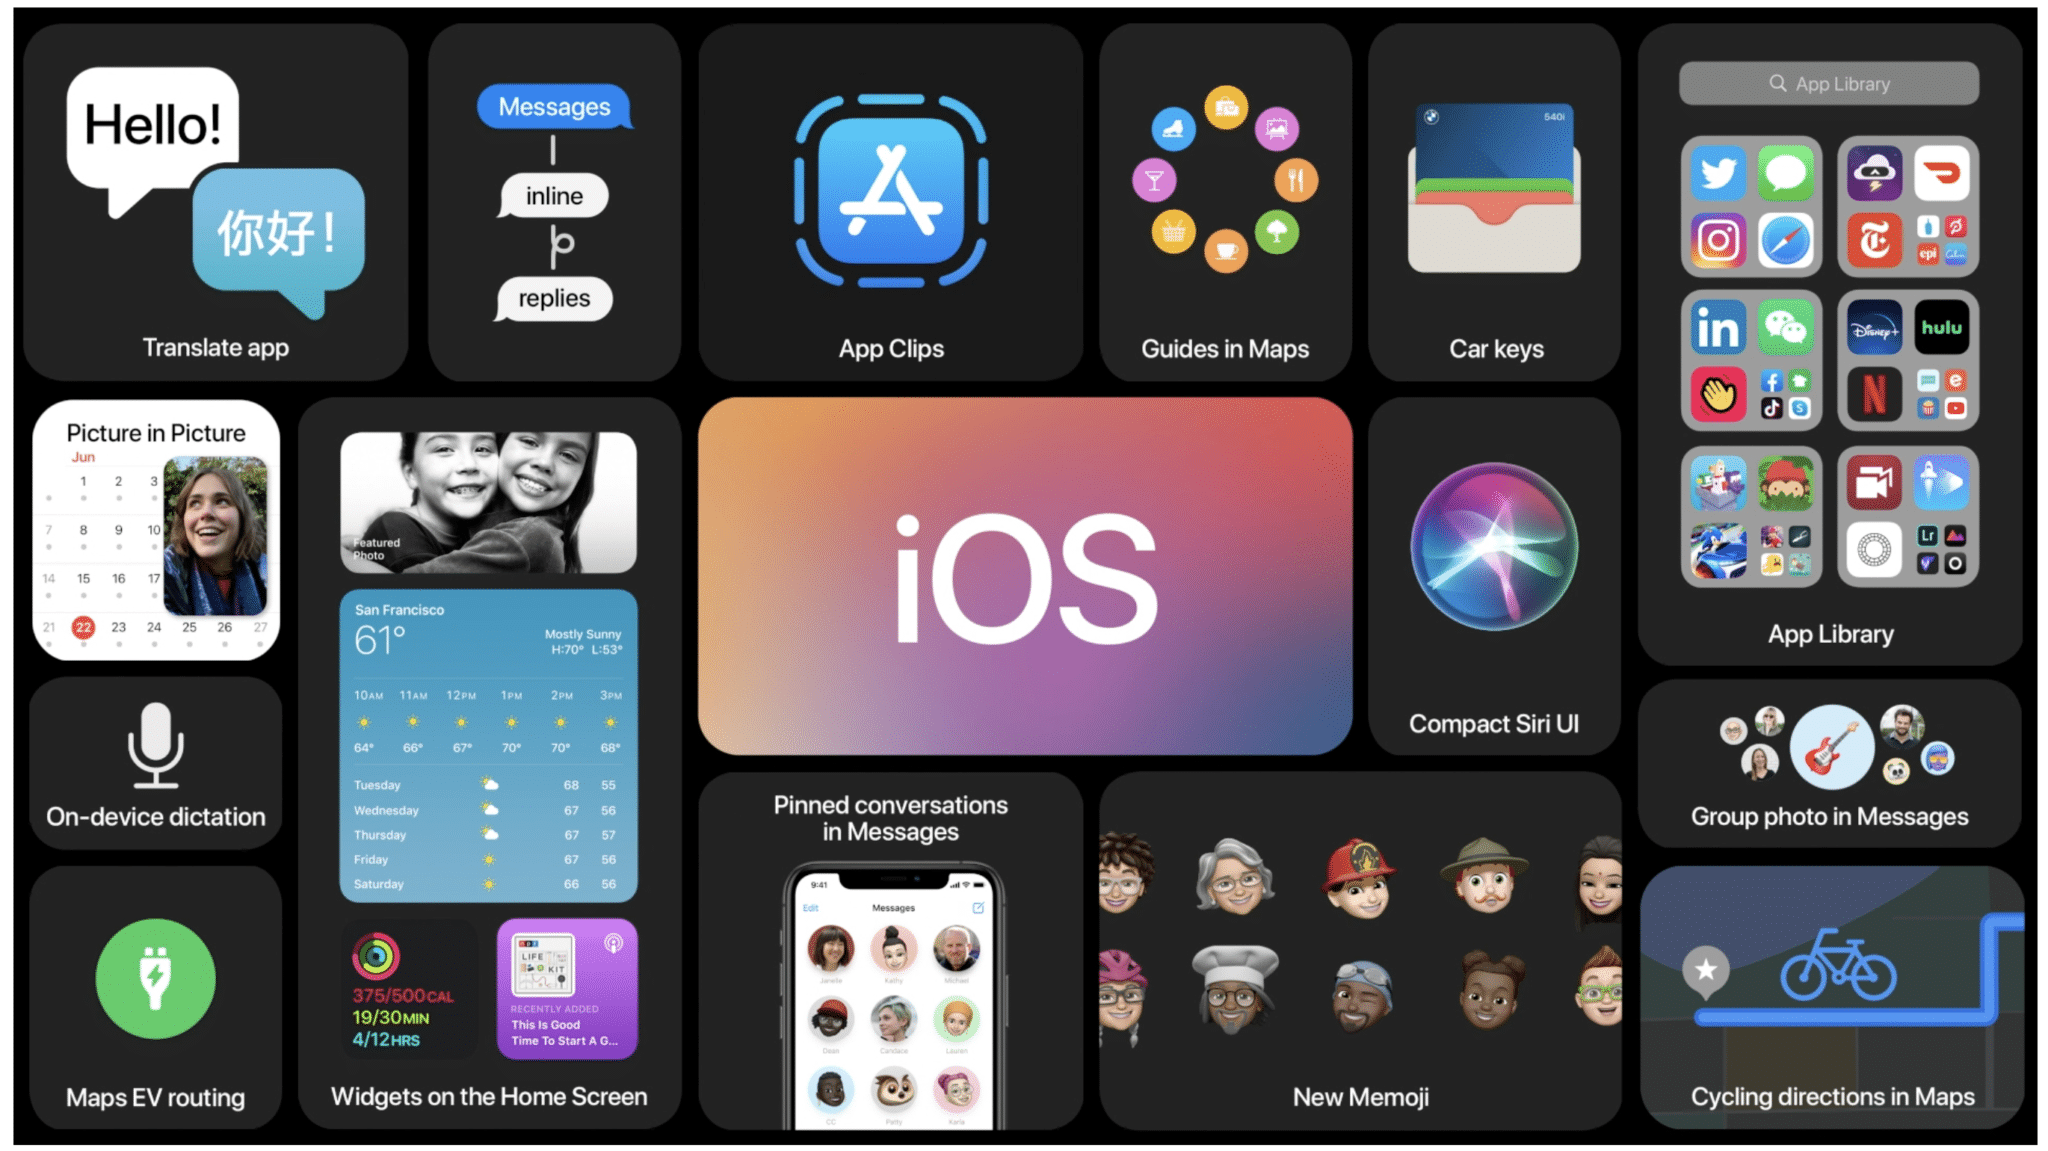 iOS 14 has copied Featured from Android Updates